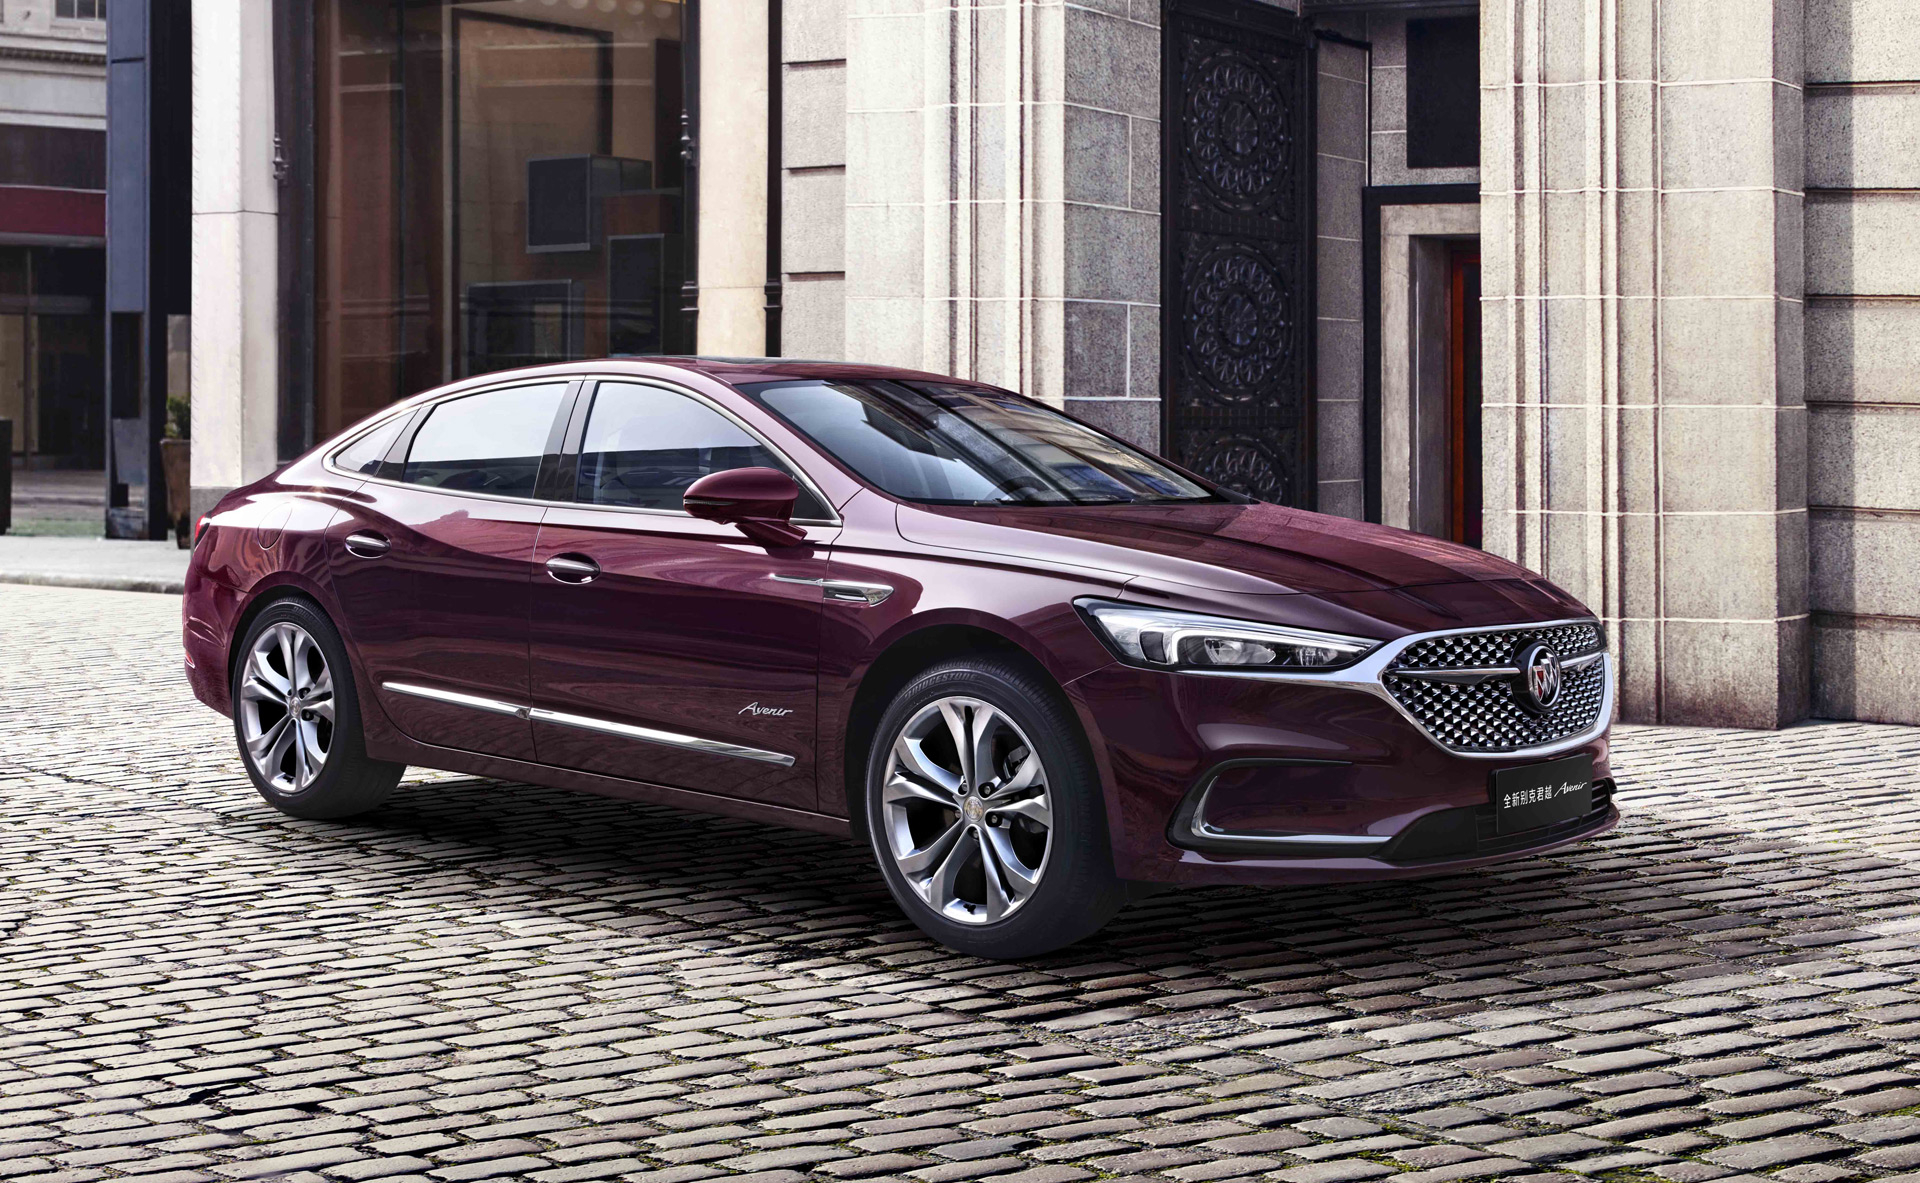 2020 Buick Lacrosse Made Handsome Just As It's Dropped In Us New 2021 Buick Lacrosse Exterior Colors, Interior Colors, Dimensions